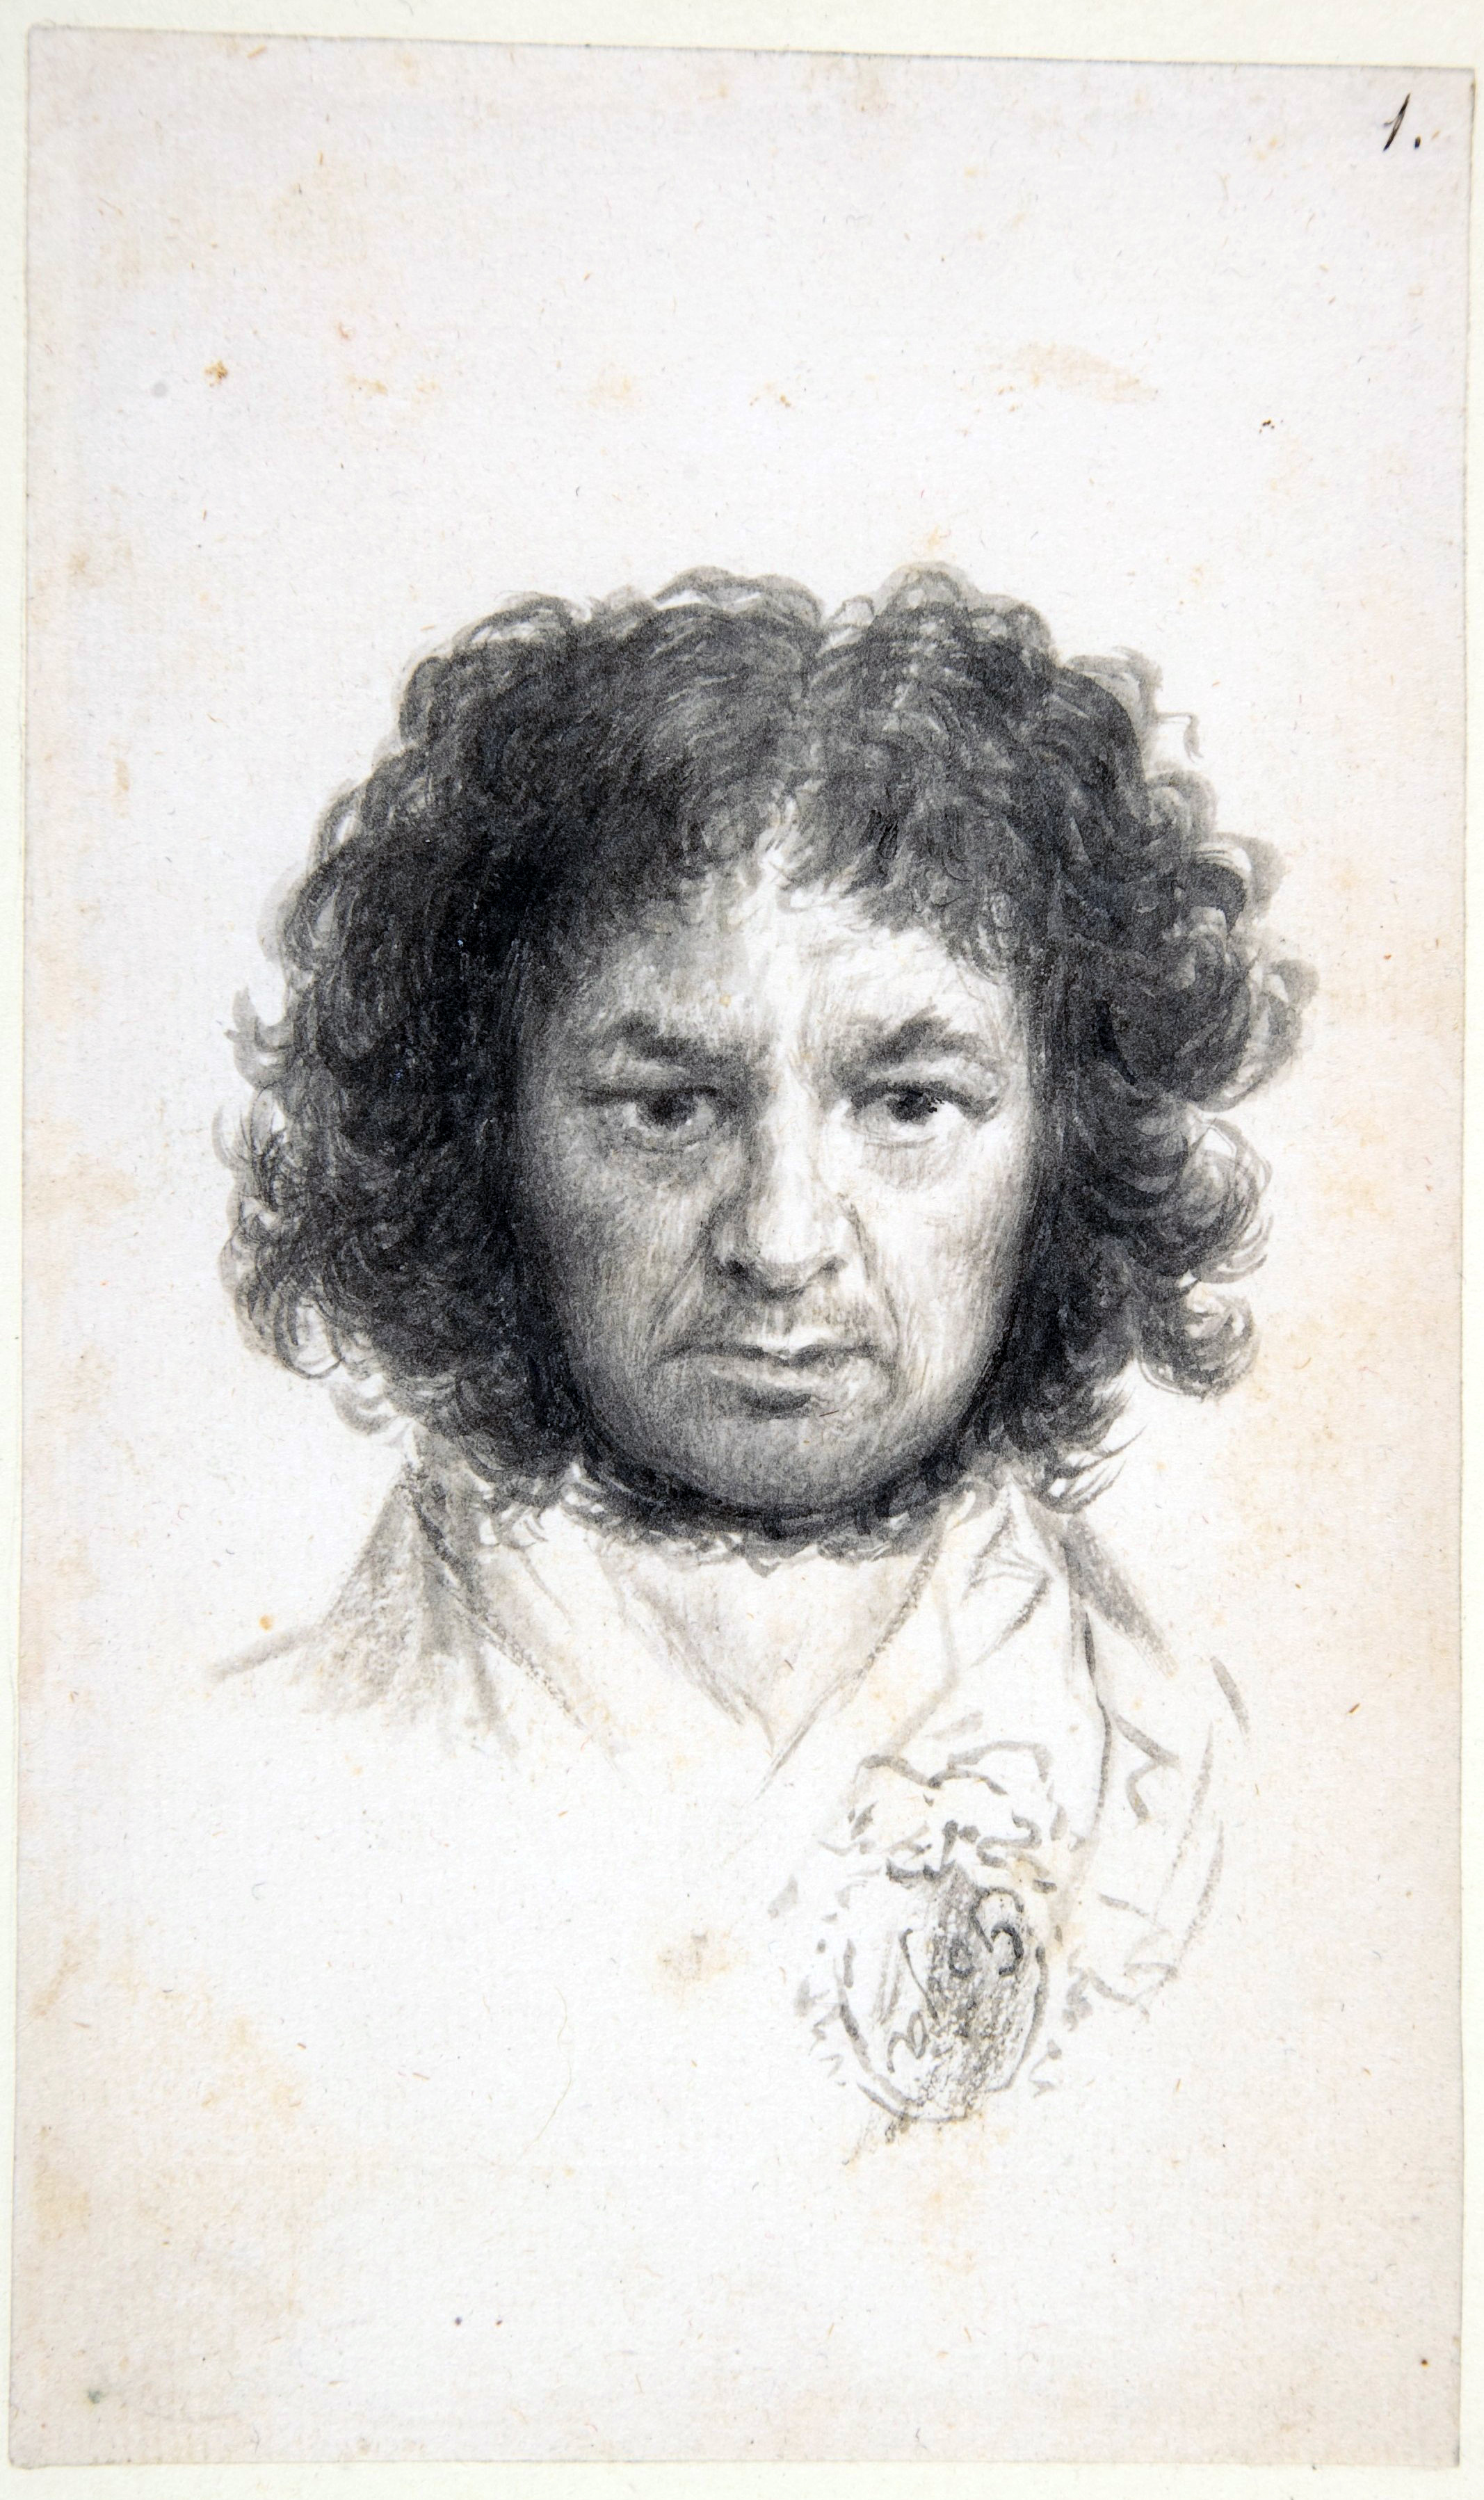 File:Goya selfportrait.jpg - Wikimedia Commons